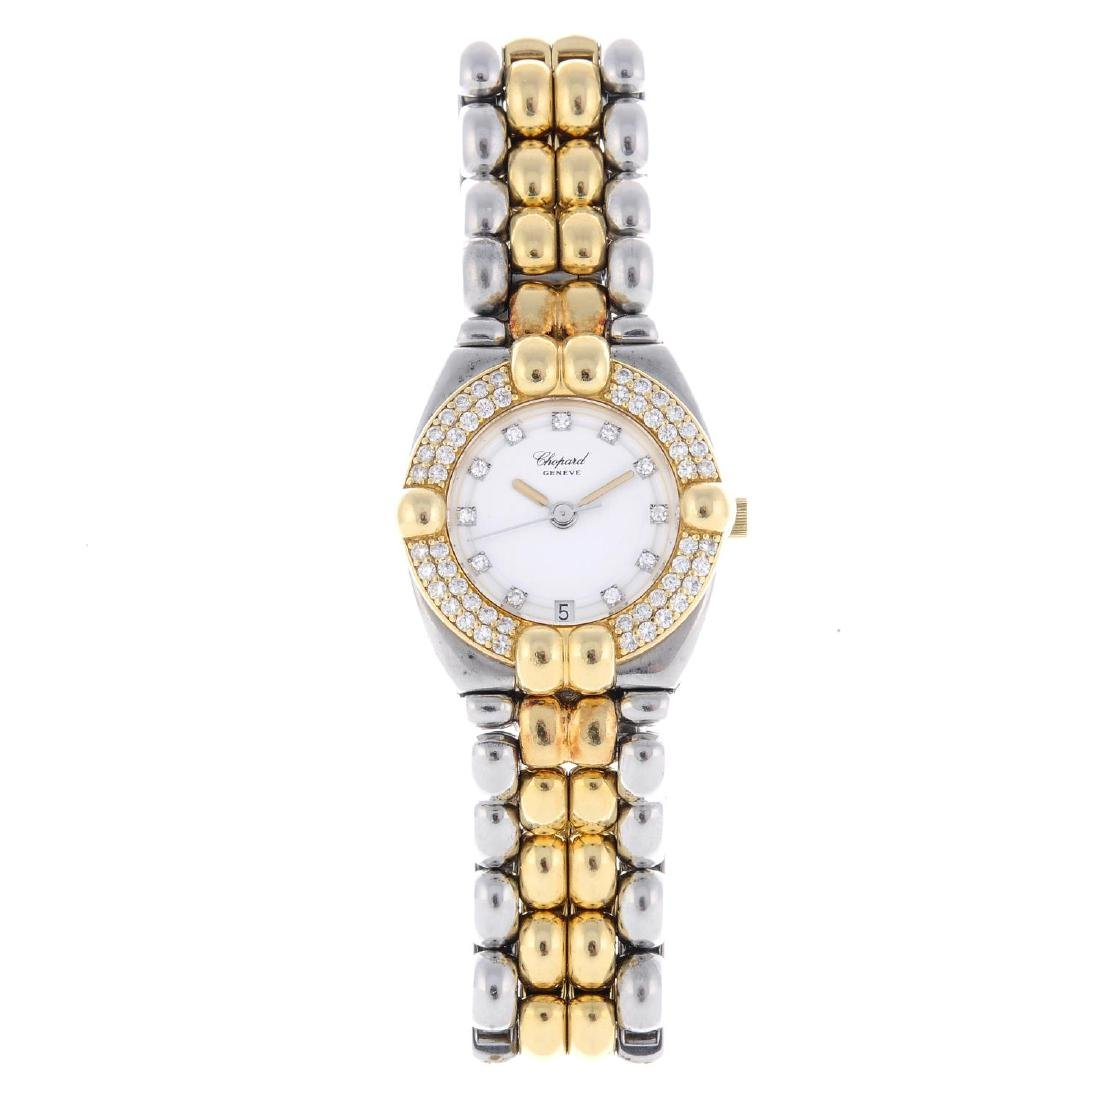 CHOPARD - a lady's Gstaad bracelet watch. Stainless